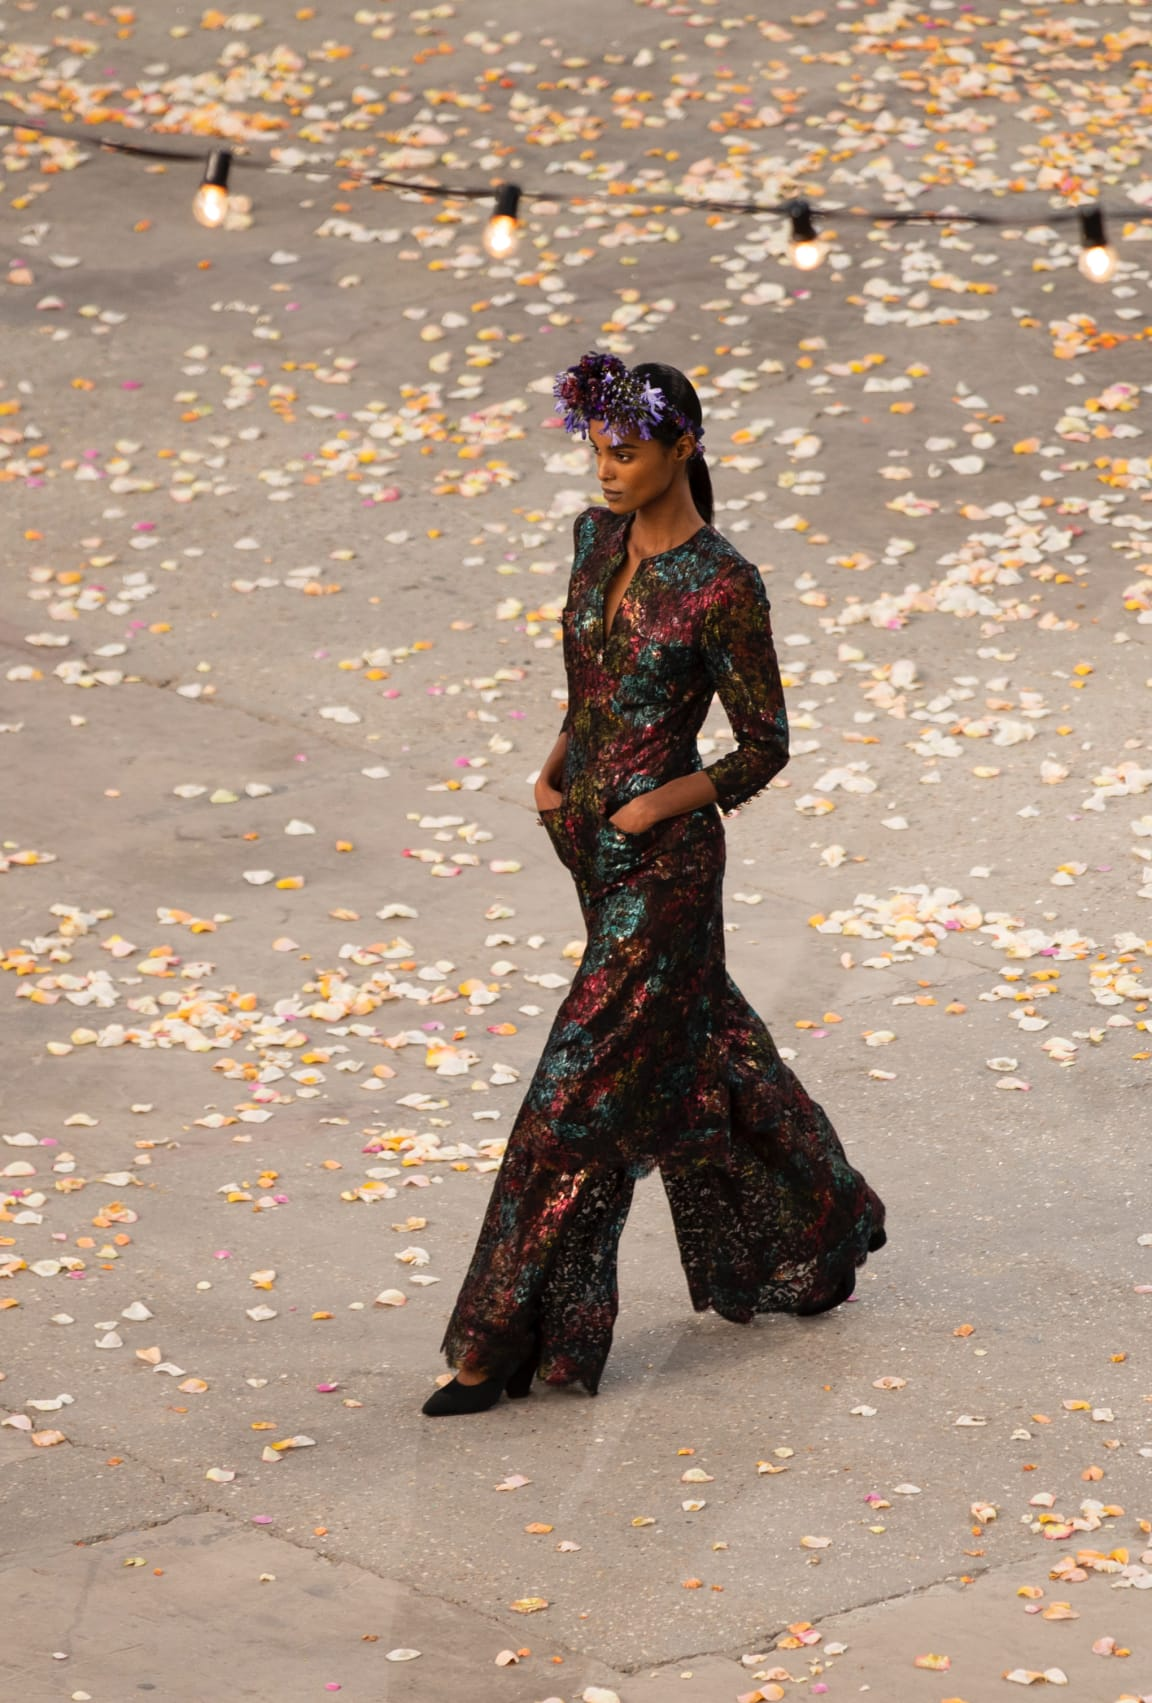 View 3 - Look 23 - Spring-Summer 2021 Haute Couture - see full sized version